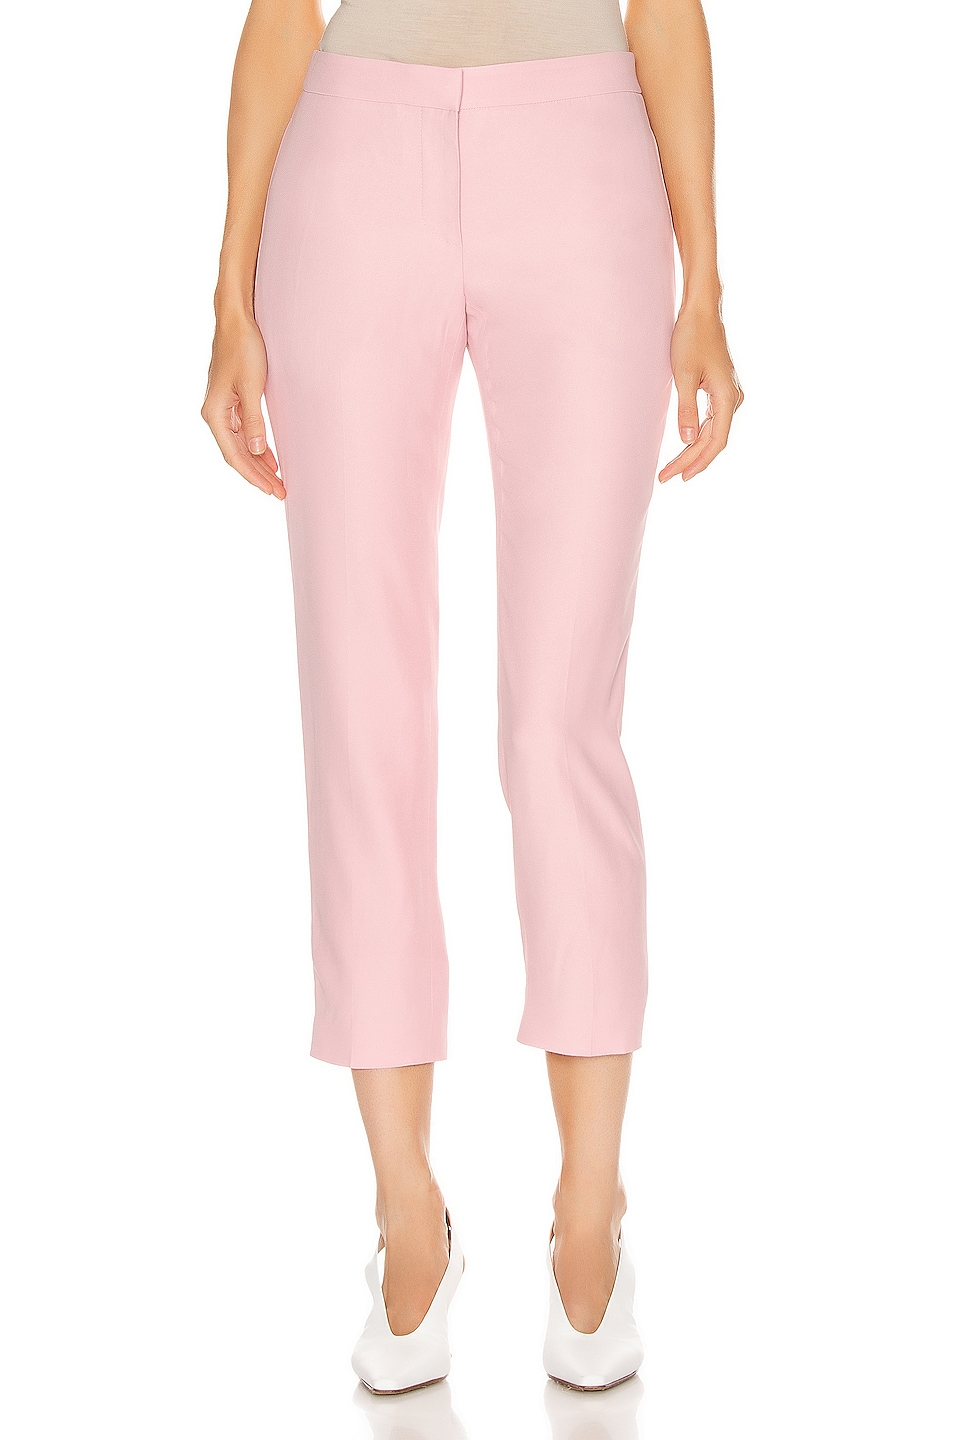 Image 1 of Alexander McQueen Cigarette Pant in Sugar Pink